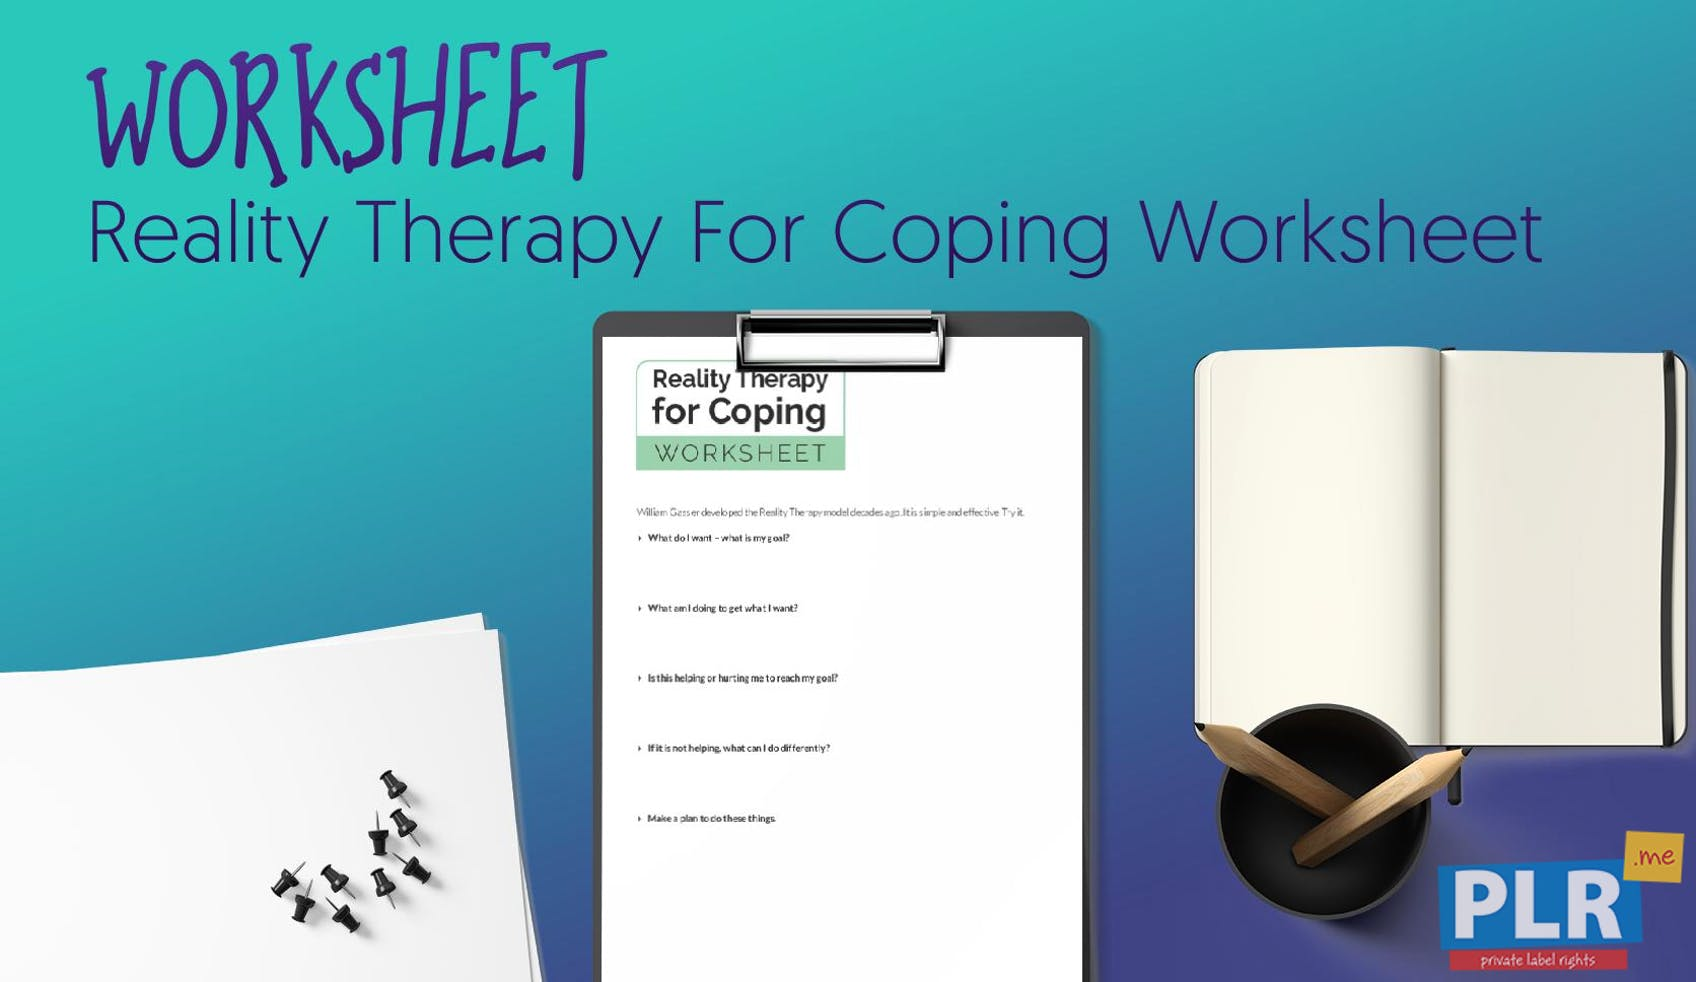 Plr Worksheets Reality Therapy For Coping Worksheet Plr Me